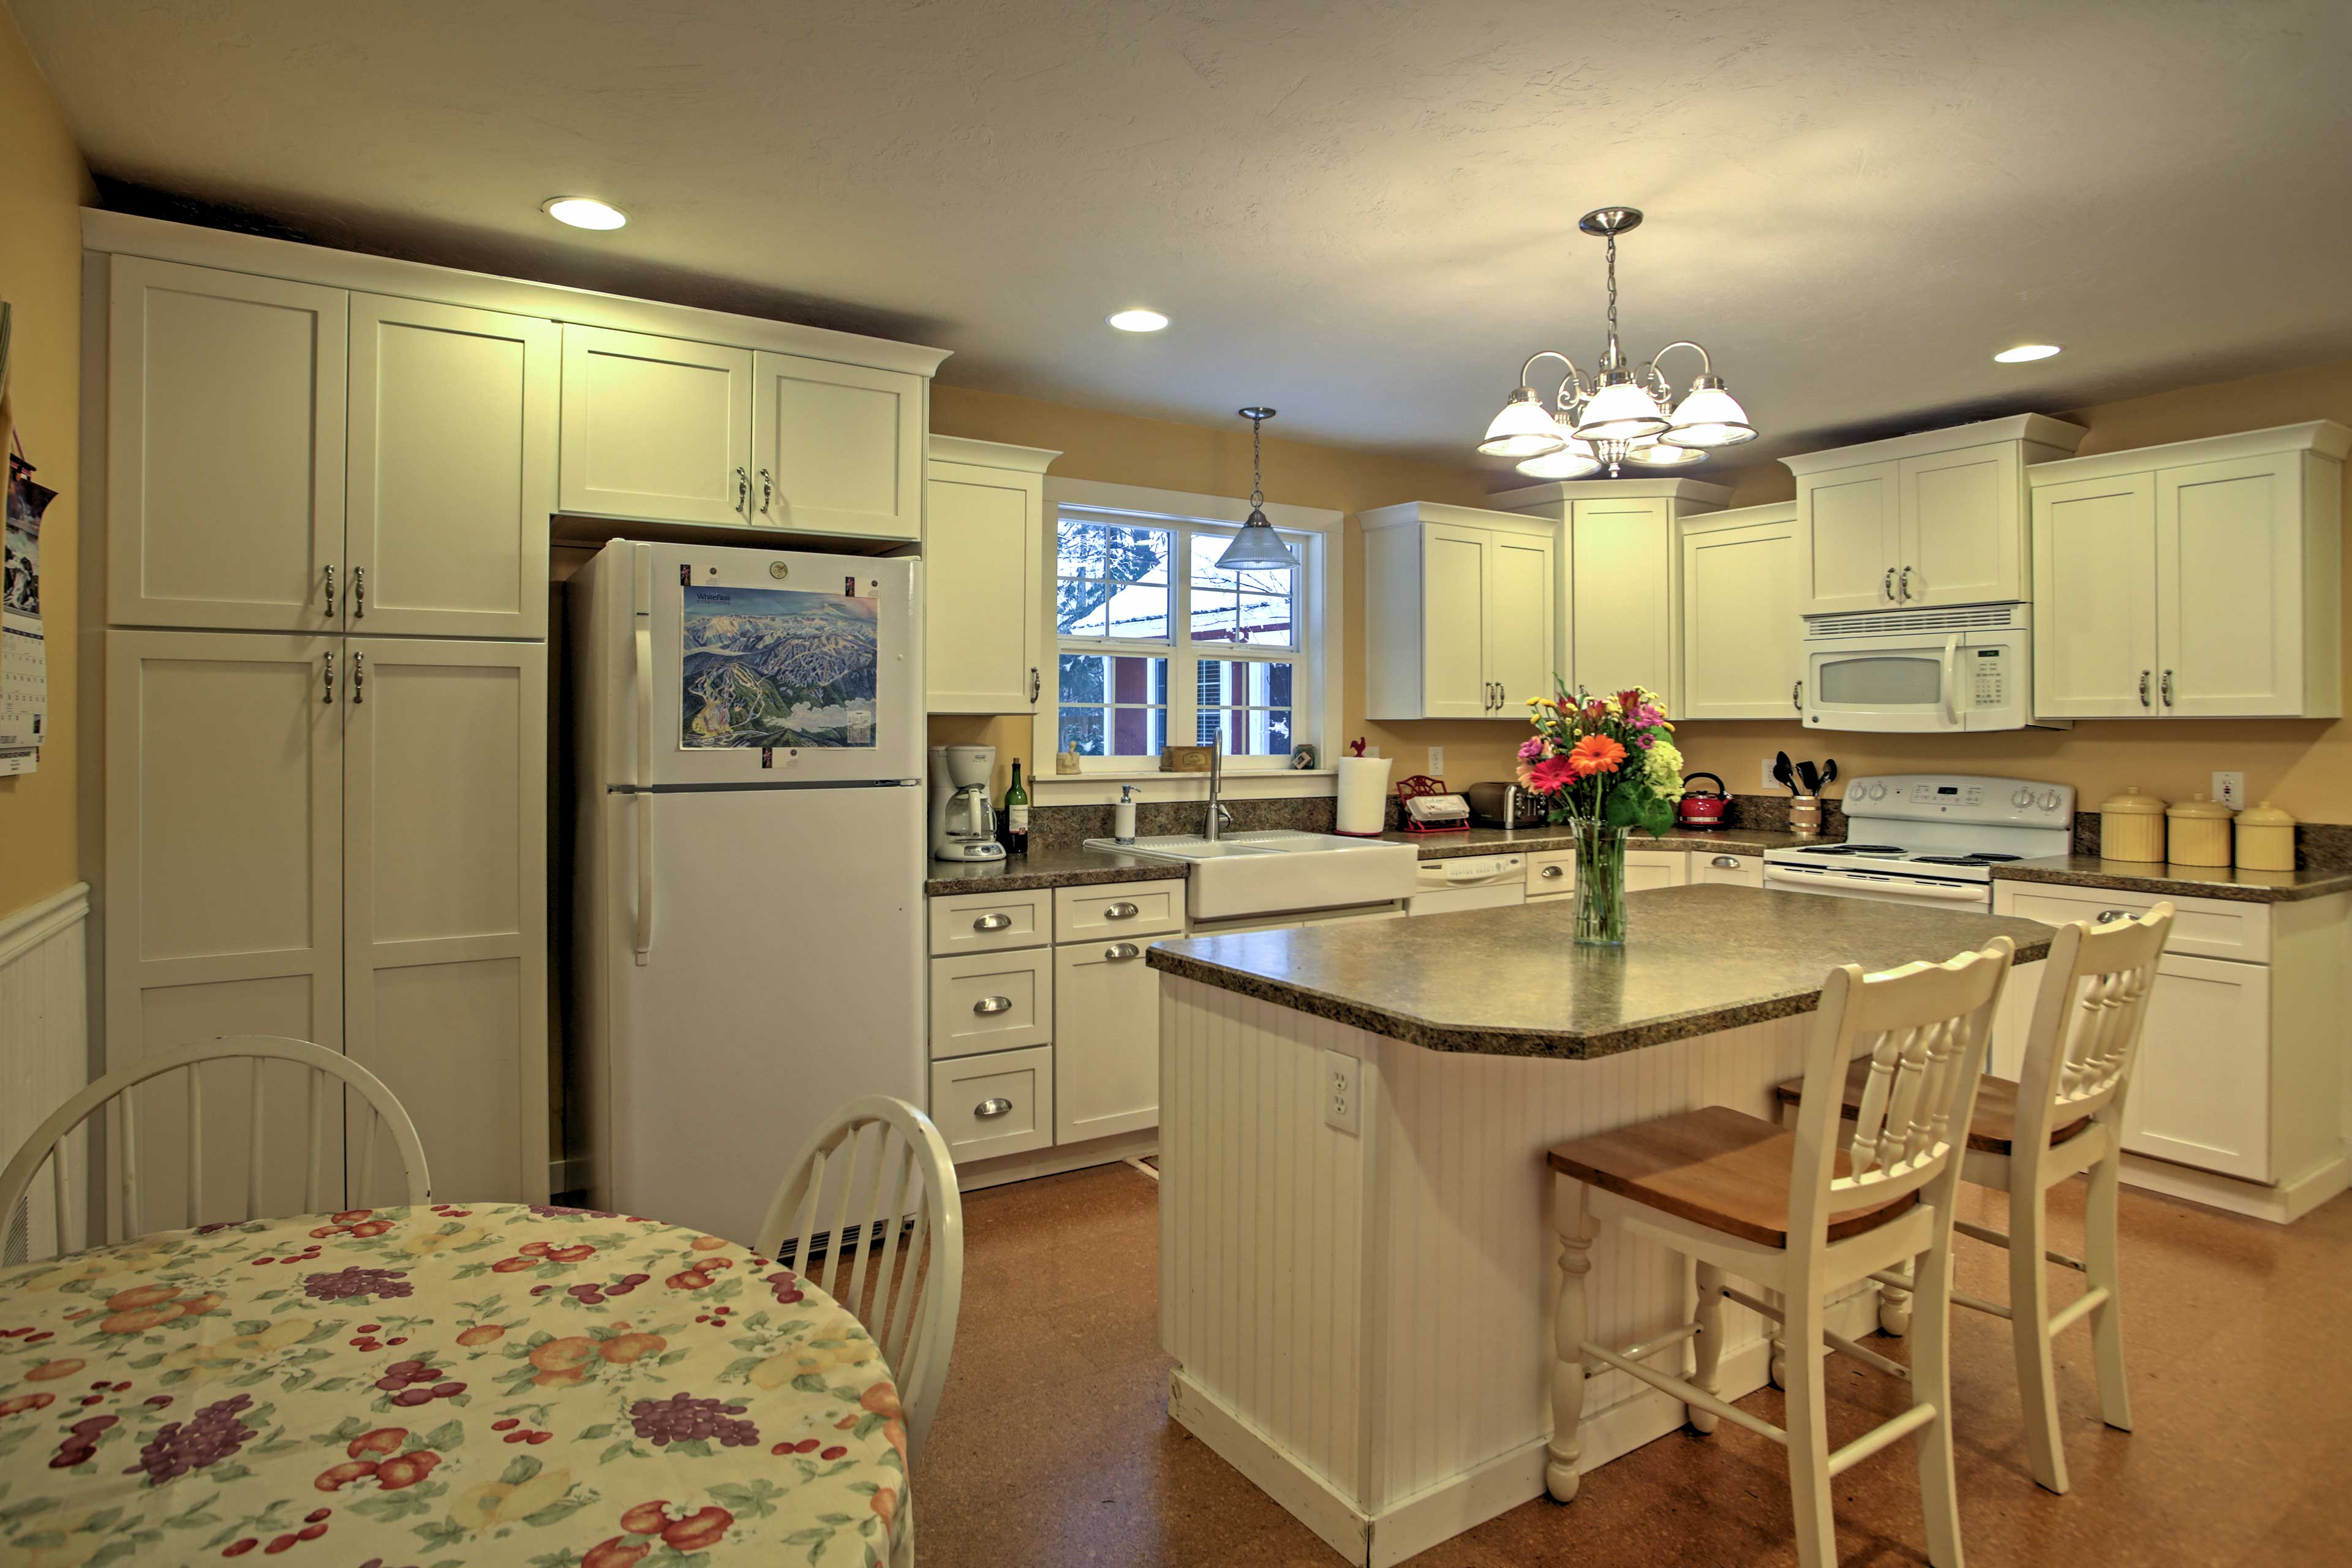 The large kitchen creates the perfect space to prepare your tasty meals.